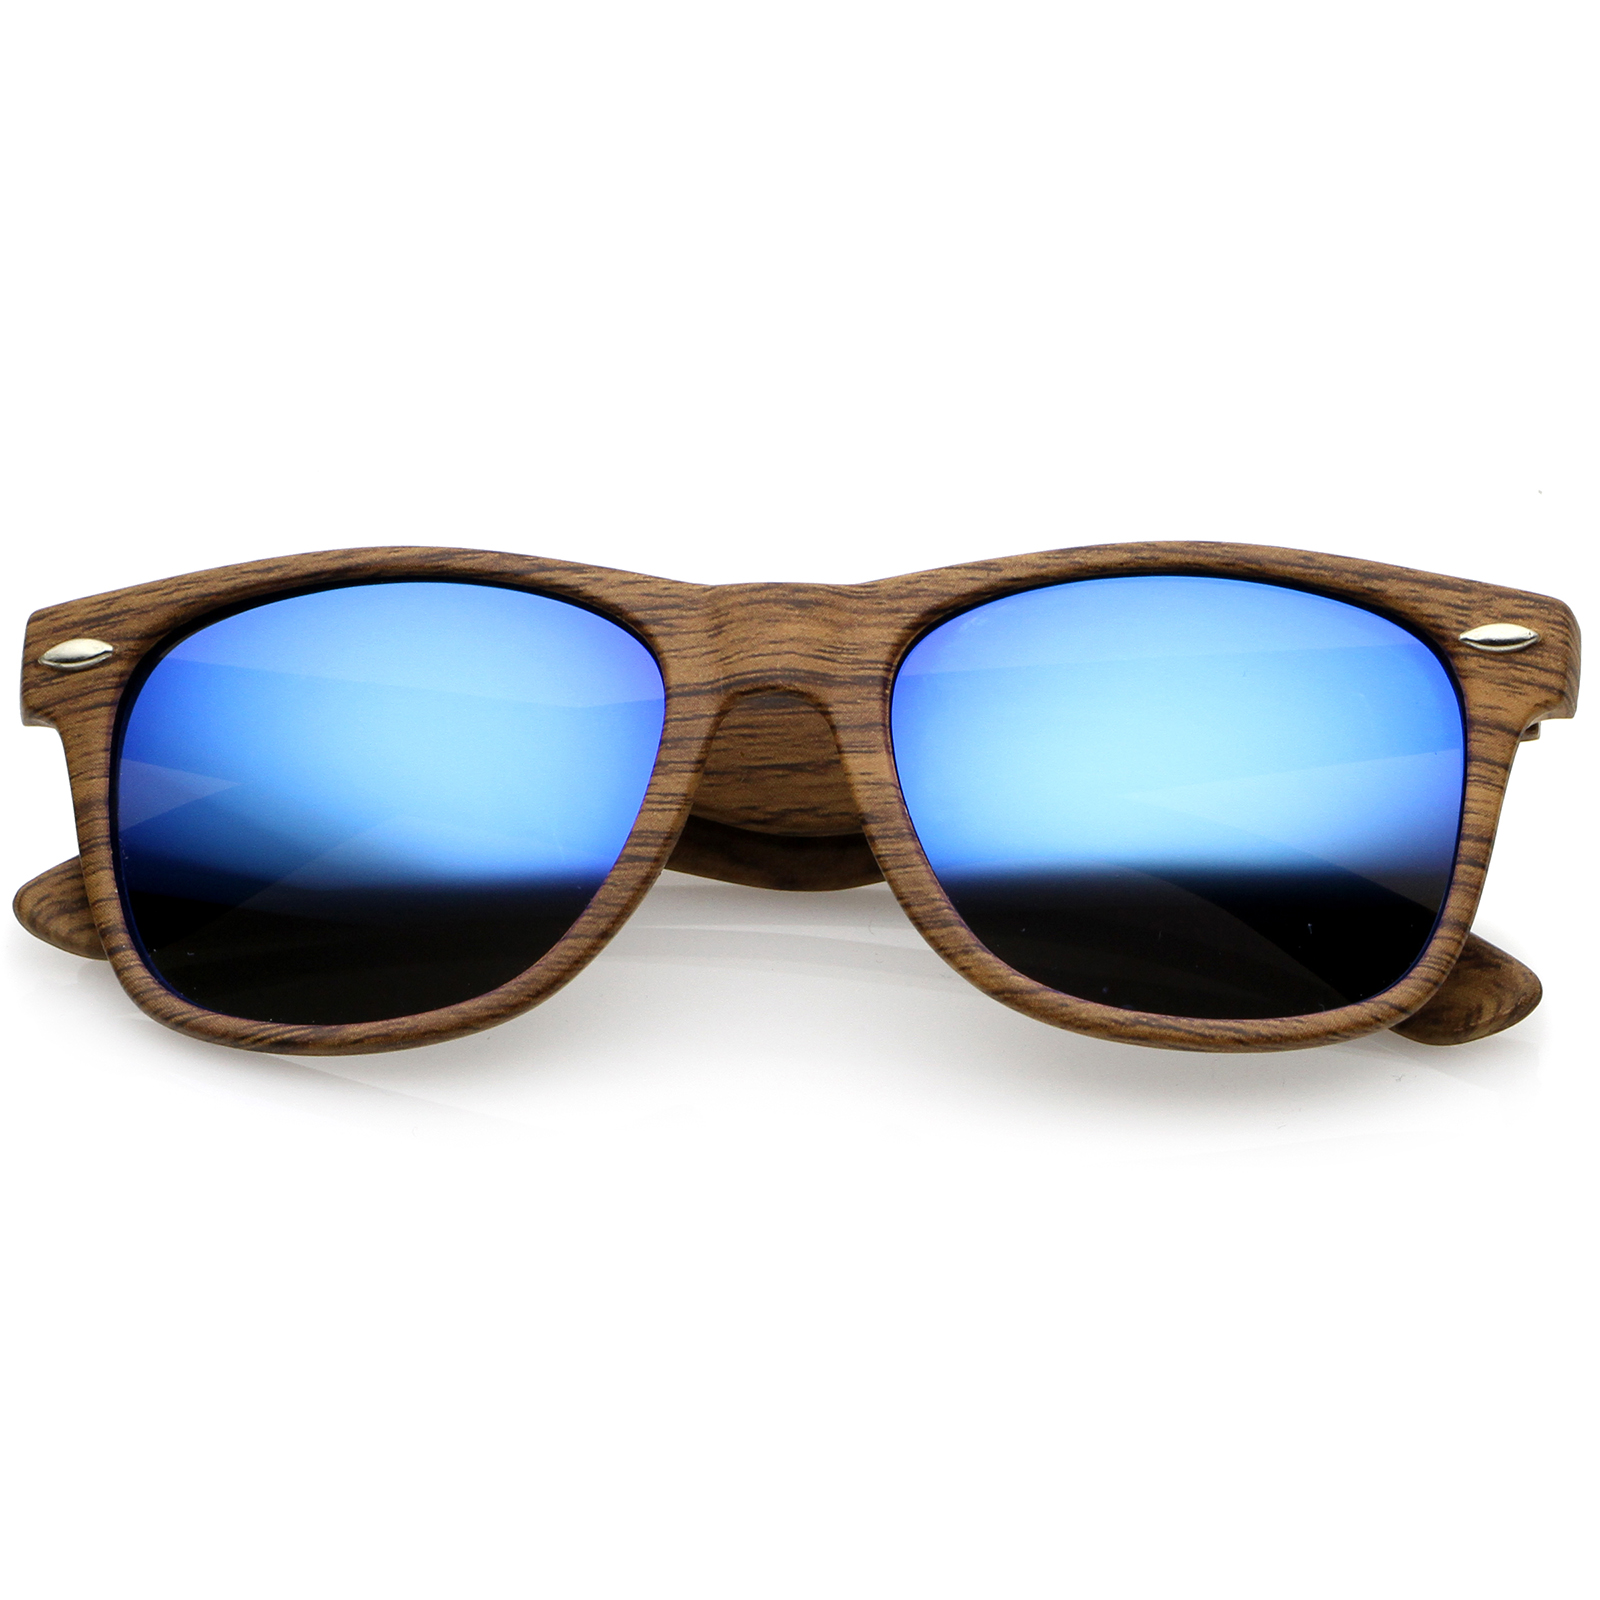 Classic Wood Printed Colored Mirror Square Lens Horn Rimmed Sunglasses 54mm (Natural Wood / Blue Mirror)